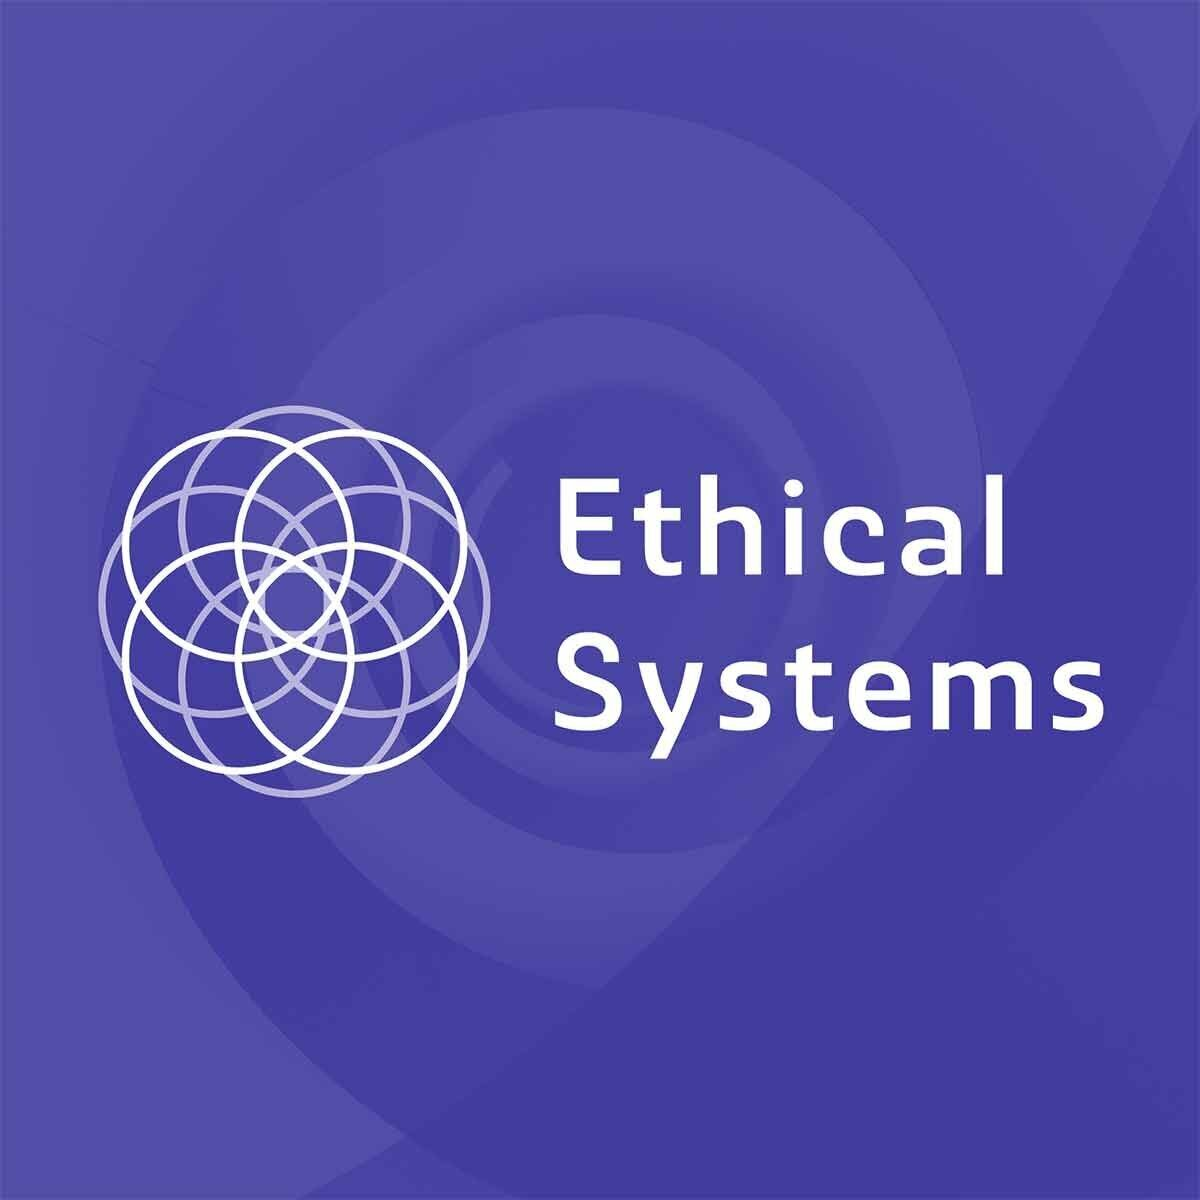 Ethical Systems logo and banner